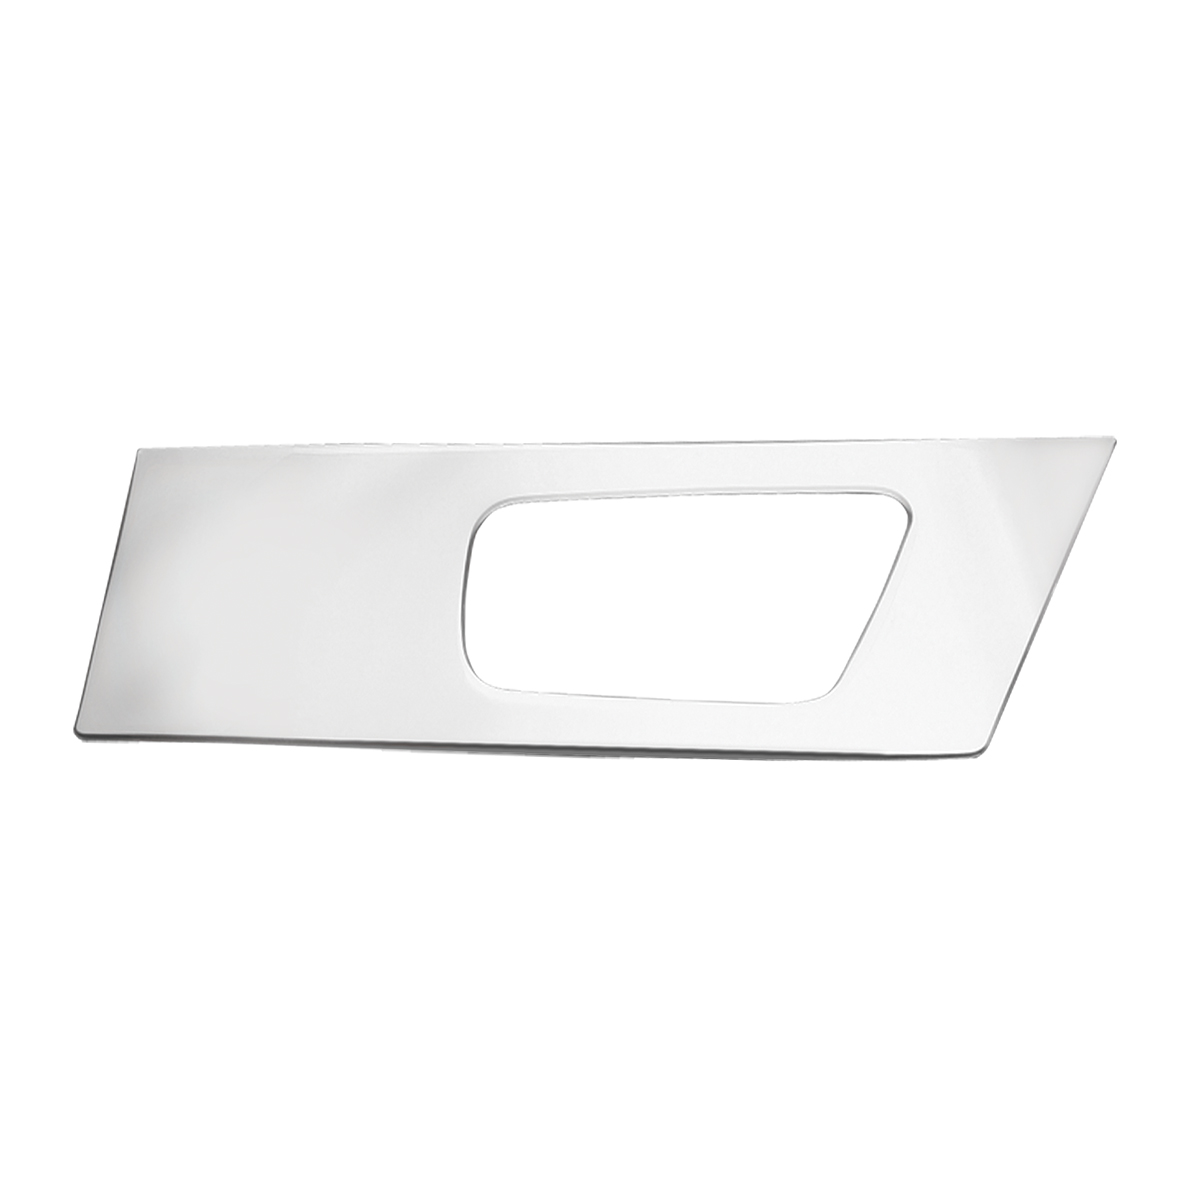 68926 KW Chrome Soft Plastic Passenger Side Door Panel